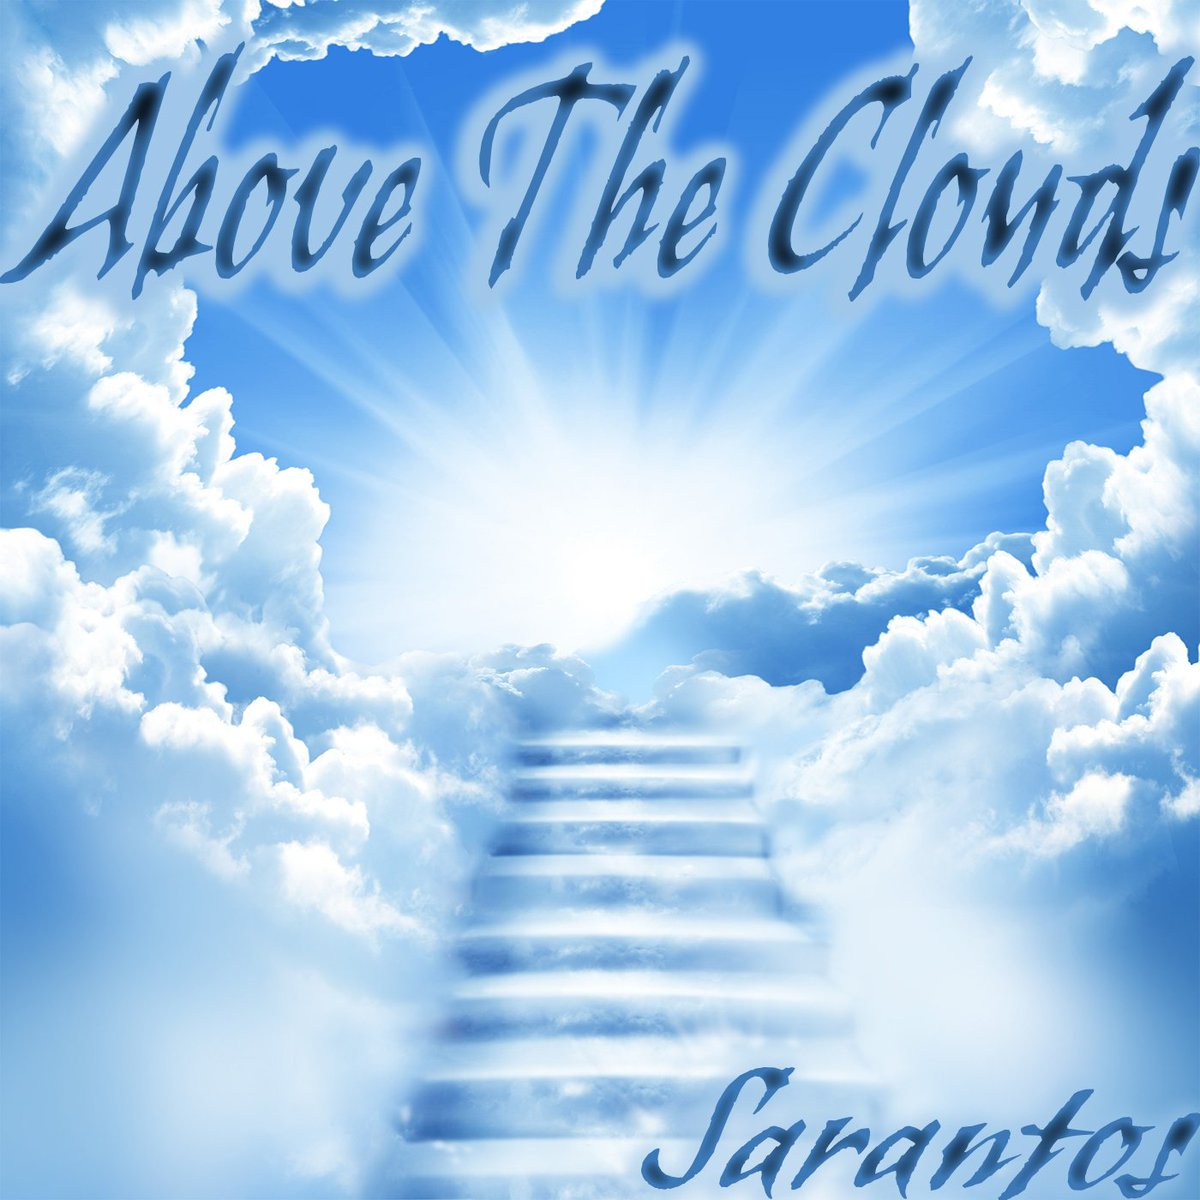 #listenlive  @SarantosMelogia - Above the Clouds #hits <br>http://pic.twitter.com/P0MXYoOk9Q    http:// player.genzel.ca/allhits.html  &nbsp;